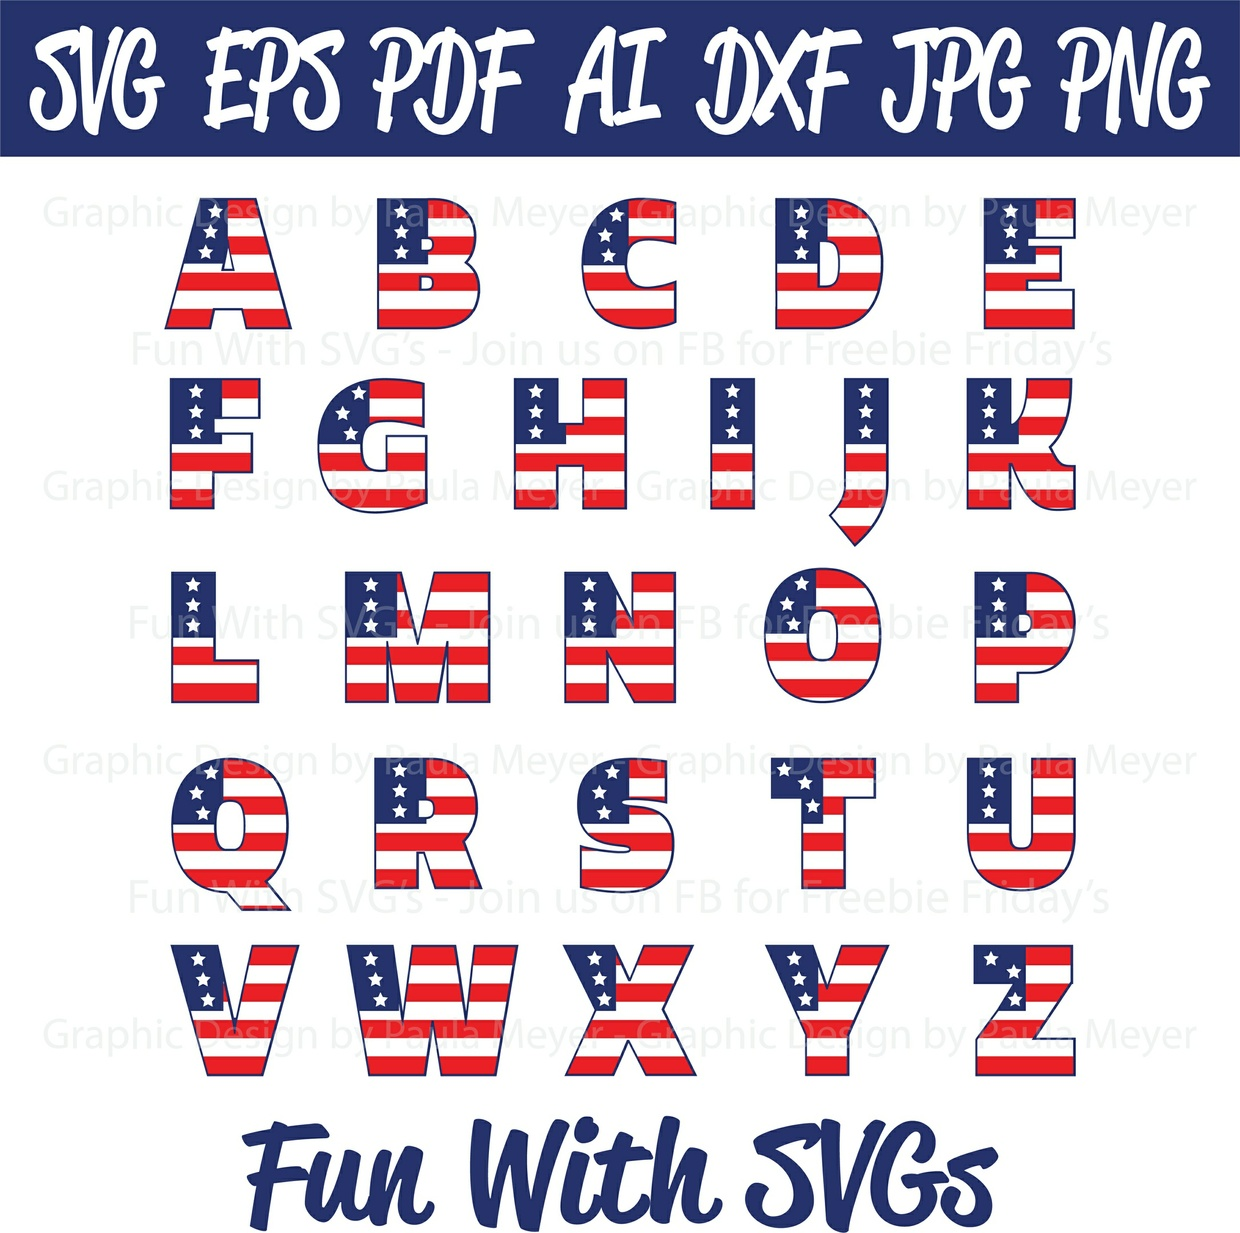 Patriotic Flag Alpha Set - SVG Cut File, High Resolution Printable Graphics and Editable Vector Art